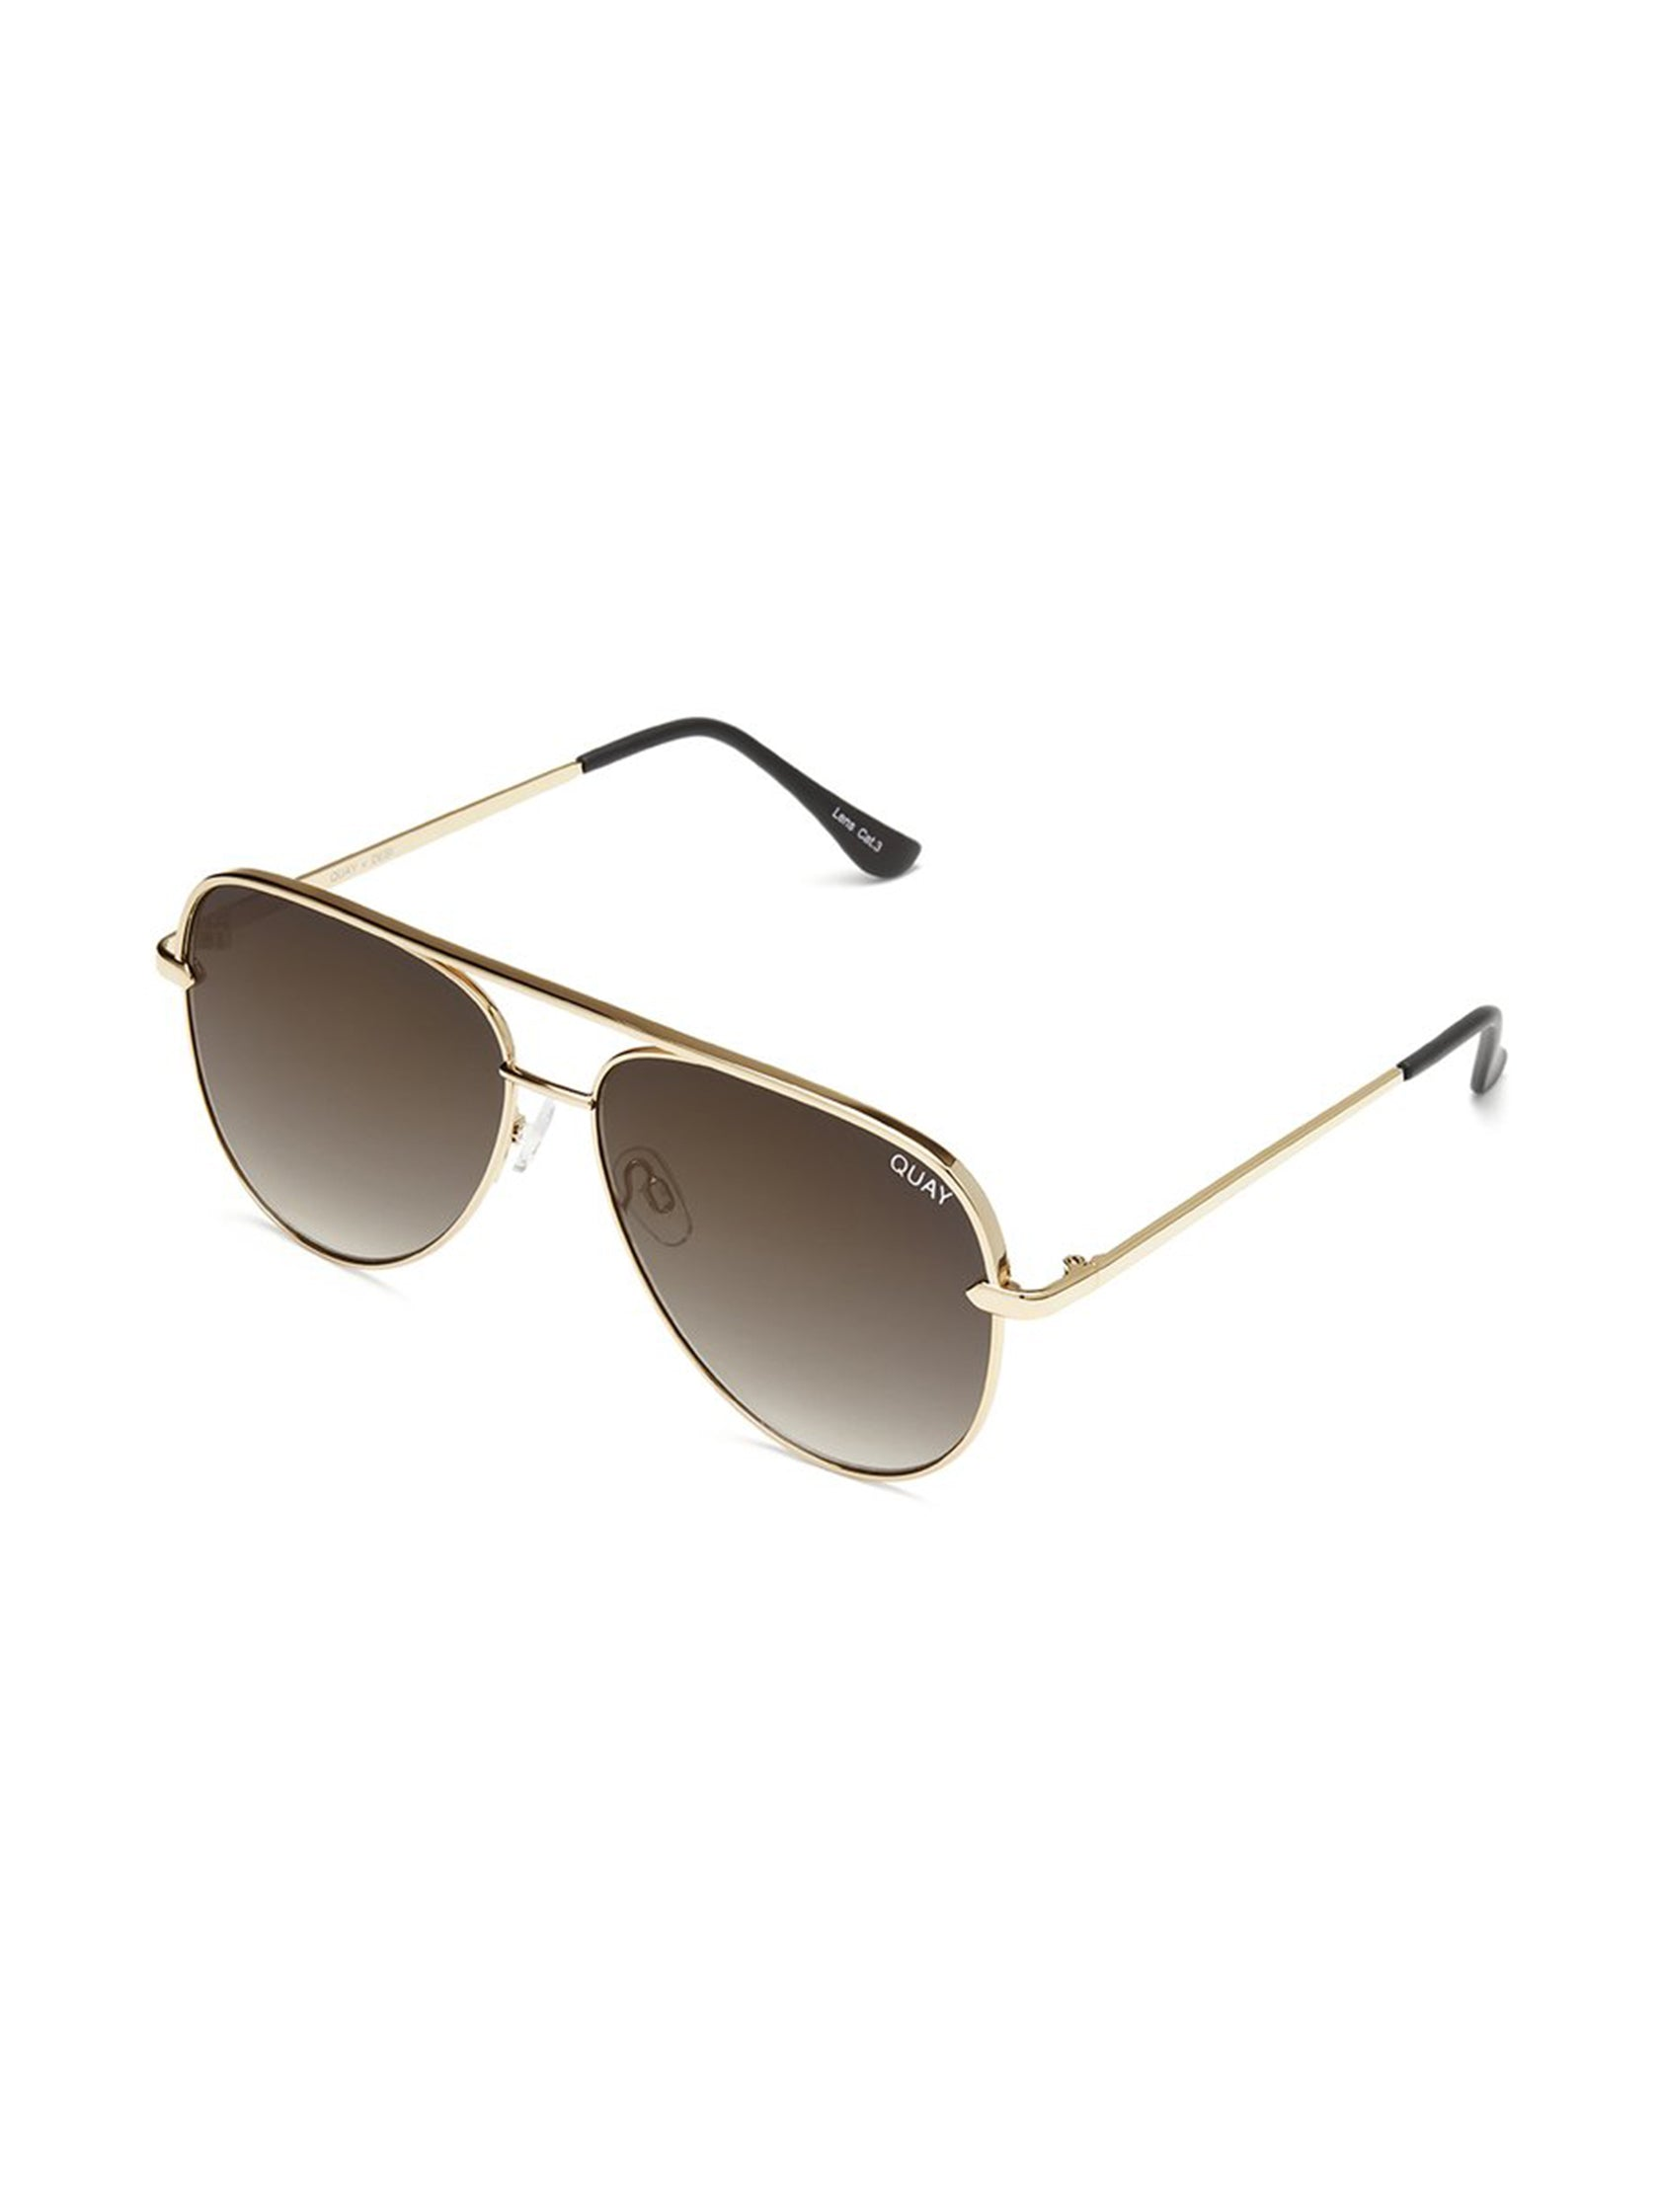 Woman wearing a sunglasses rental from Quay Australia called Sahara 60mm Aviator Sunglasses